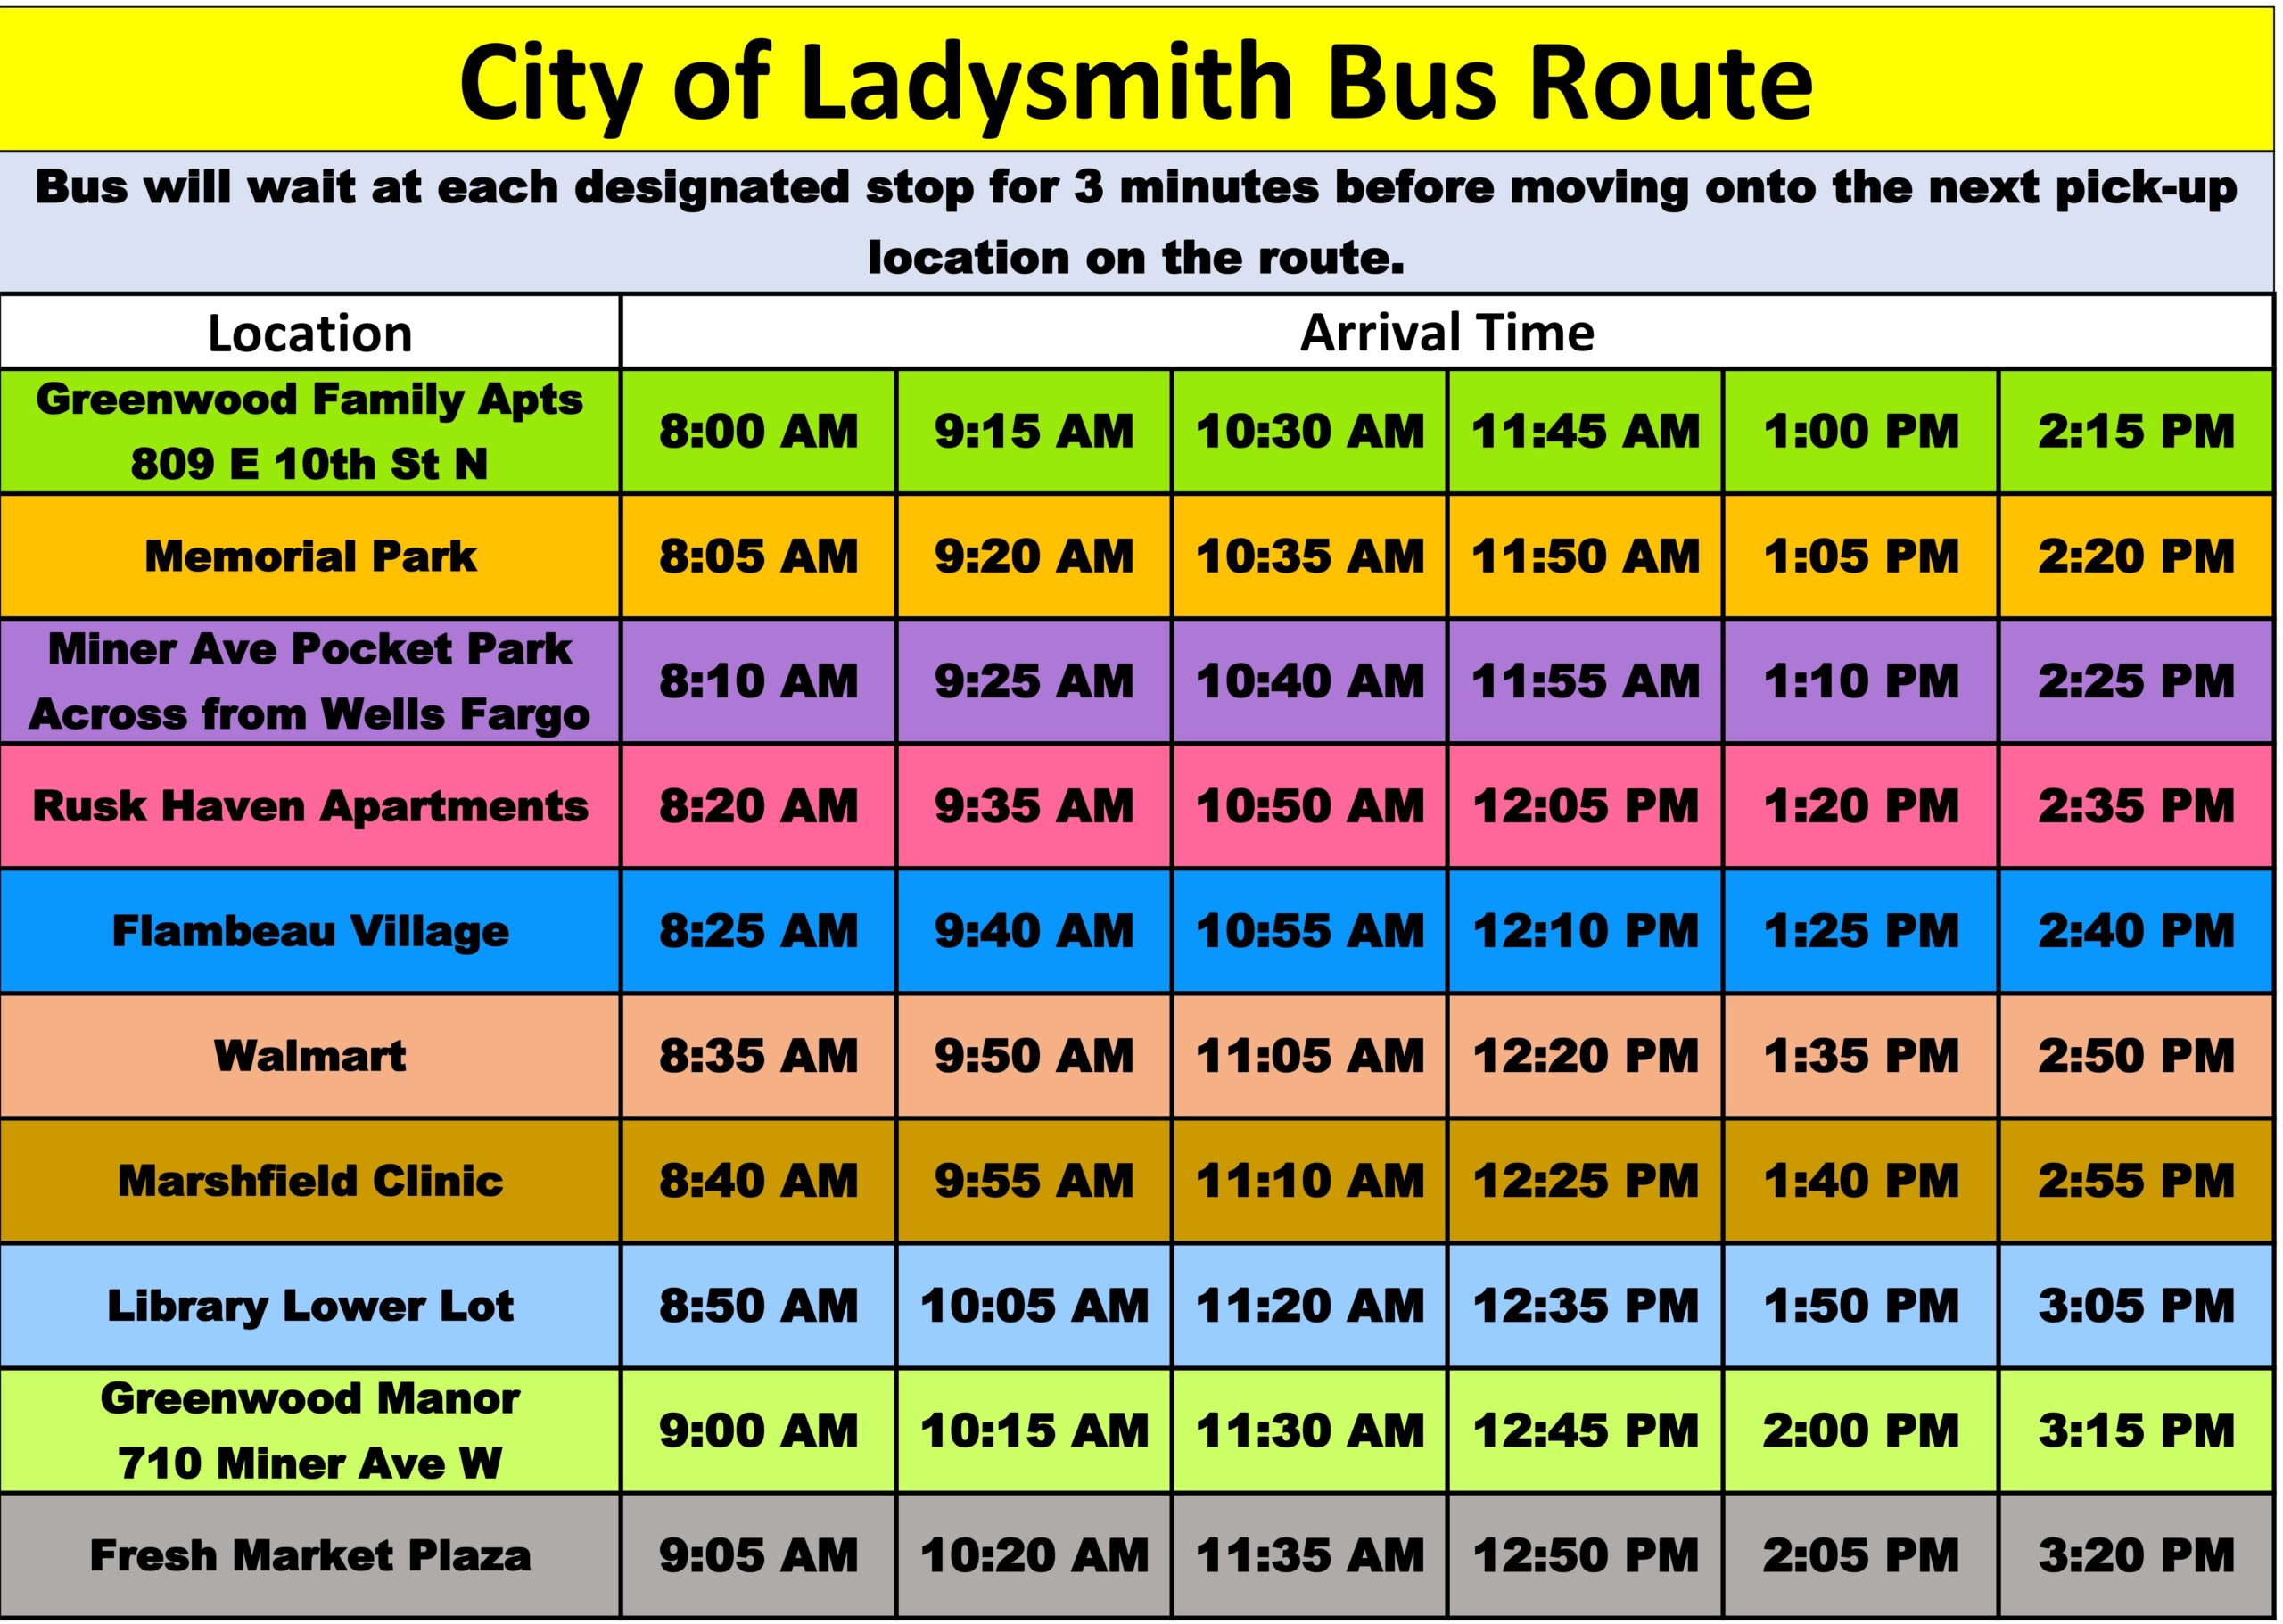 City of Ladysmith Bus Route Summer Schedule